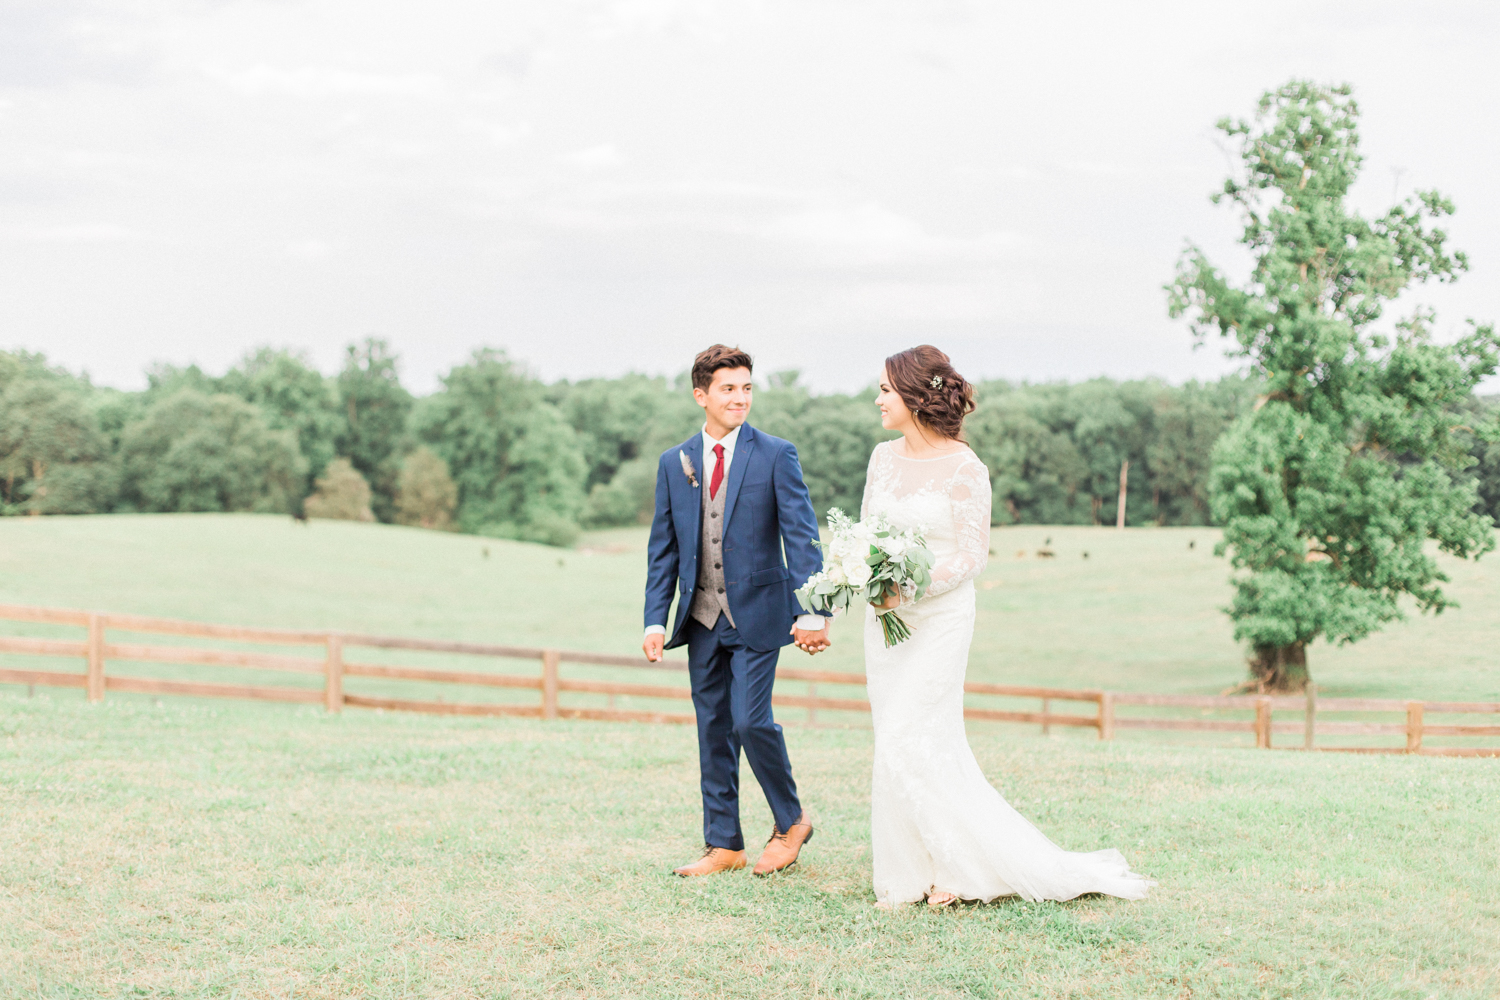 David's Bridal long sleeved lace wedding gown. Summer, outdoor, barn wedding in north Georgia at Hays McDonald Farm in Jefferson, Georgia. Photo by Kesia Marie Photography - Fine Art Wedding Photographer.